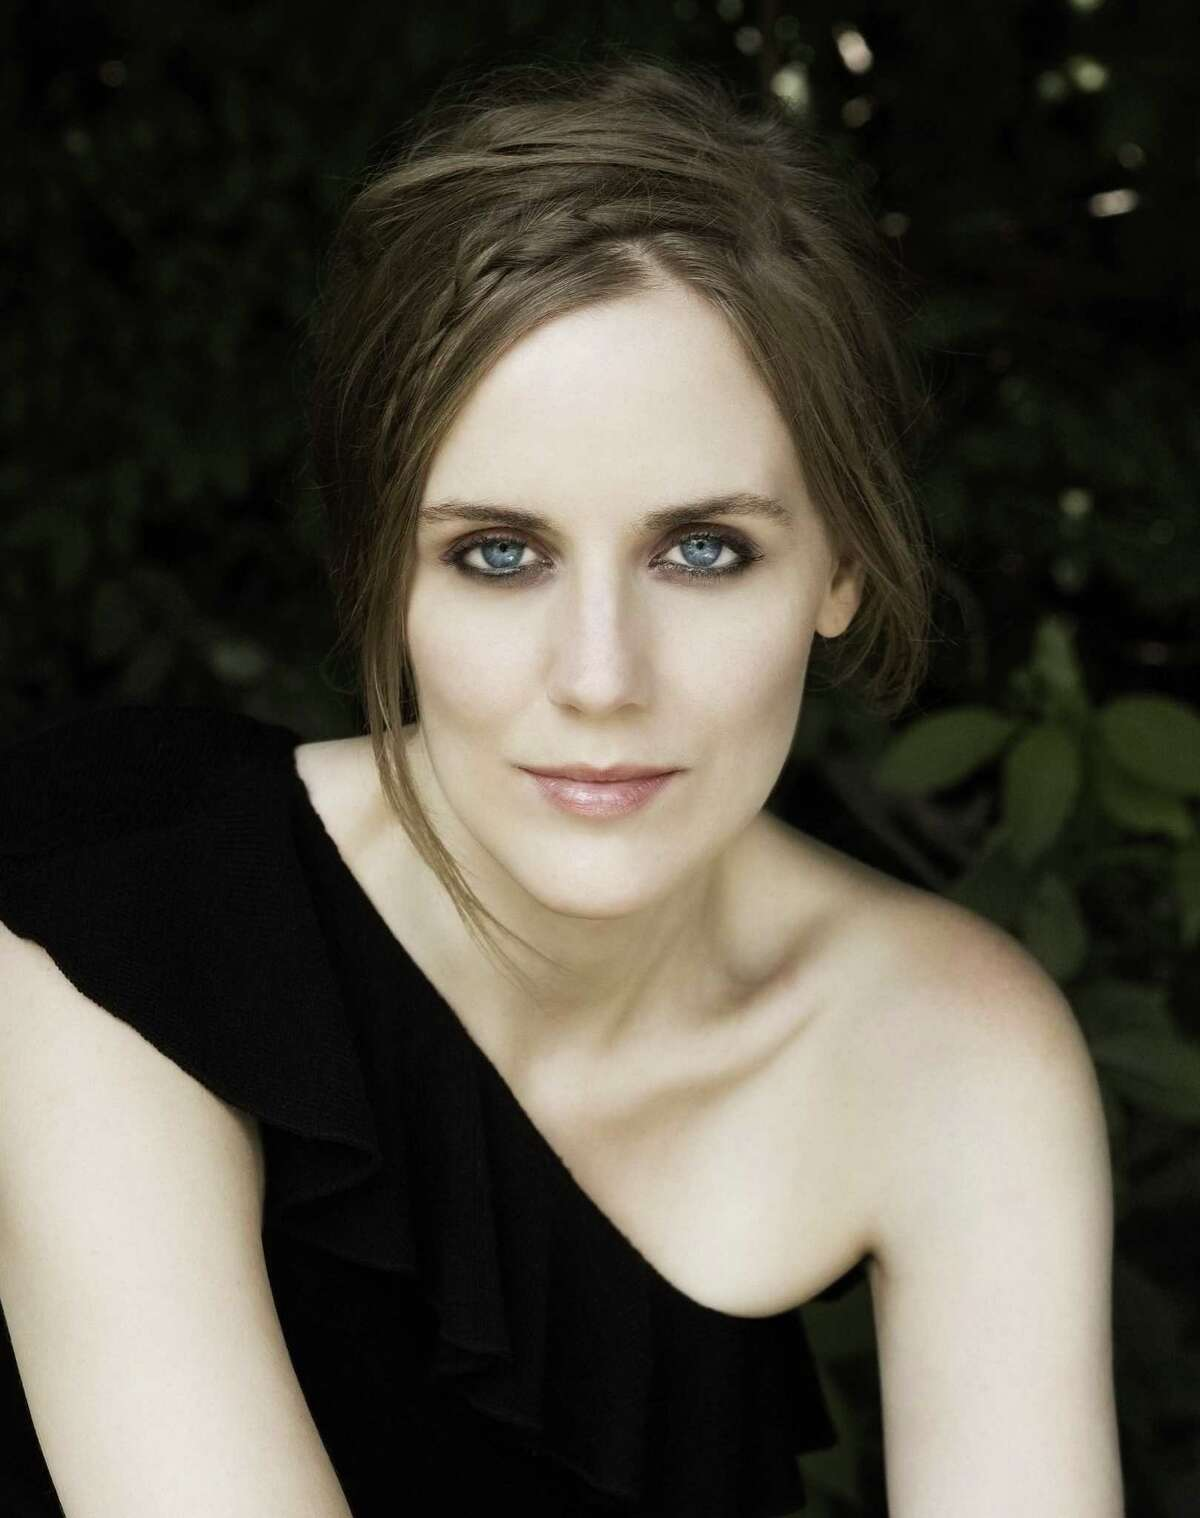 """Mezzo-soprano Rebecca Ringle Kamarei will be the soloist on songs by Charles Ives and Maurice Ravel at the Norwalk Symphony's """"American Connections"""" concert."""